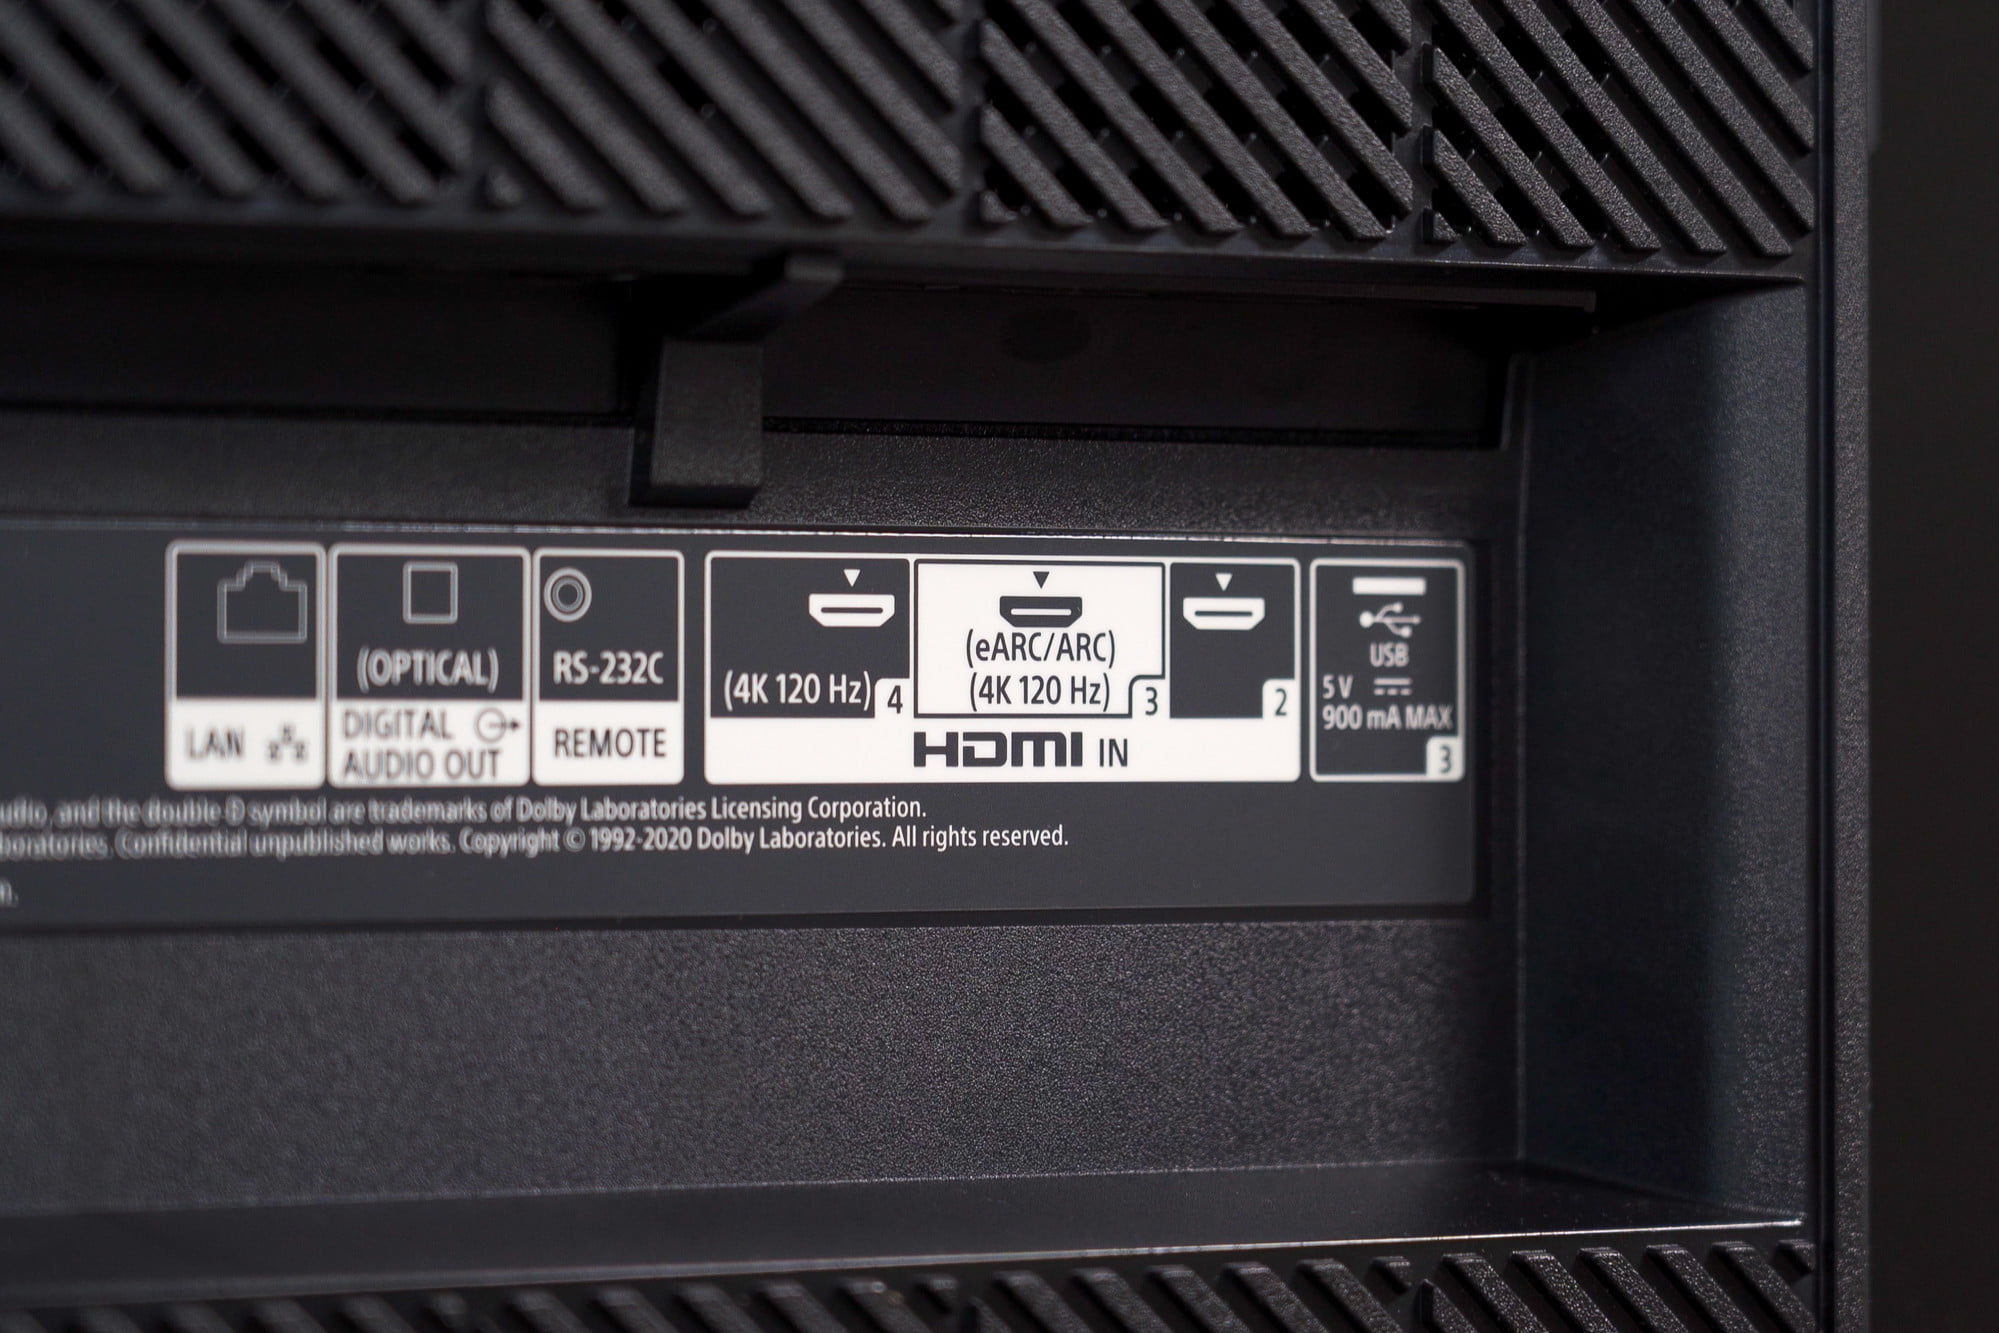 A close up image on the Sony A80J 4K HDR OLED TV's plugins and ports on the backside.